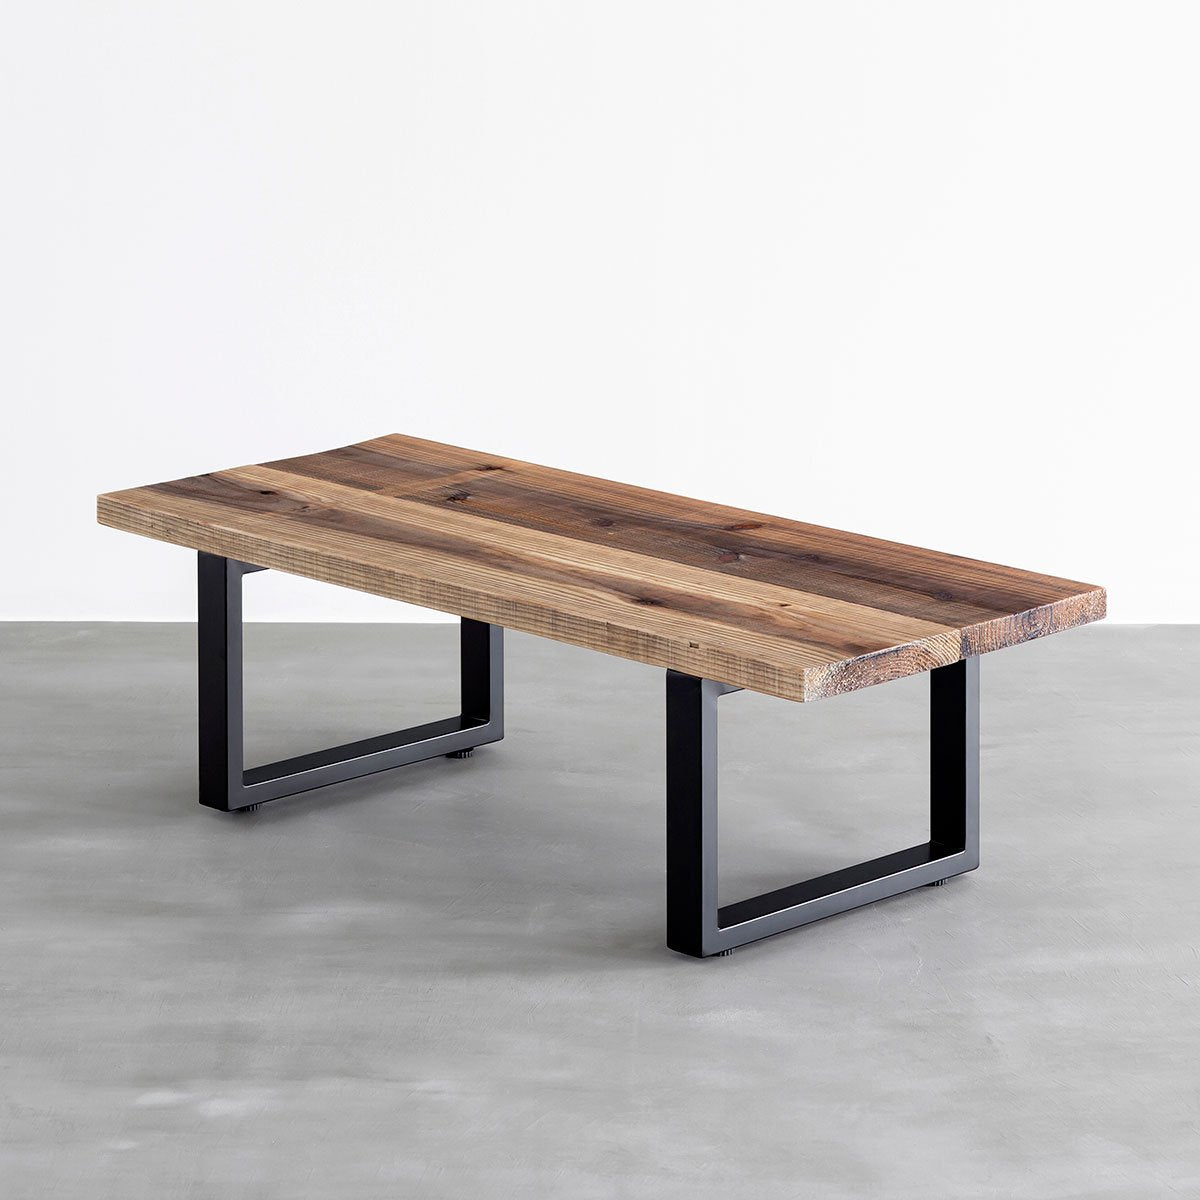 THE LOW TABLE / 杉無垢材 ヴィンテージスタイル × Black Rectangle Steel